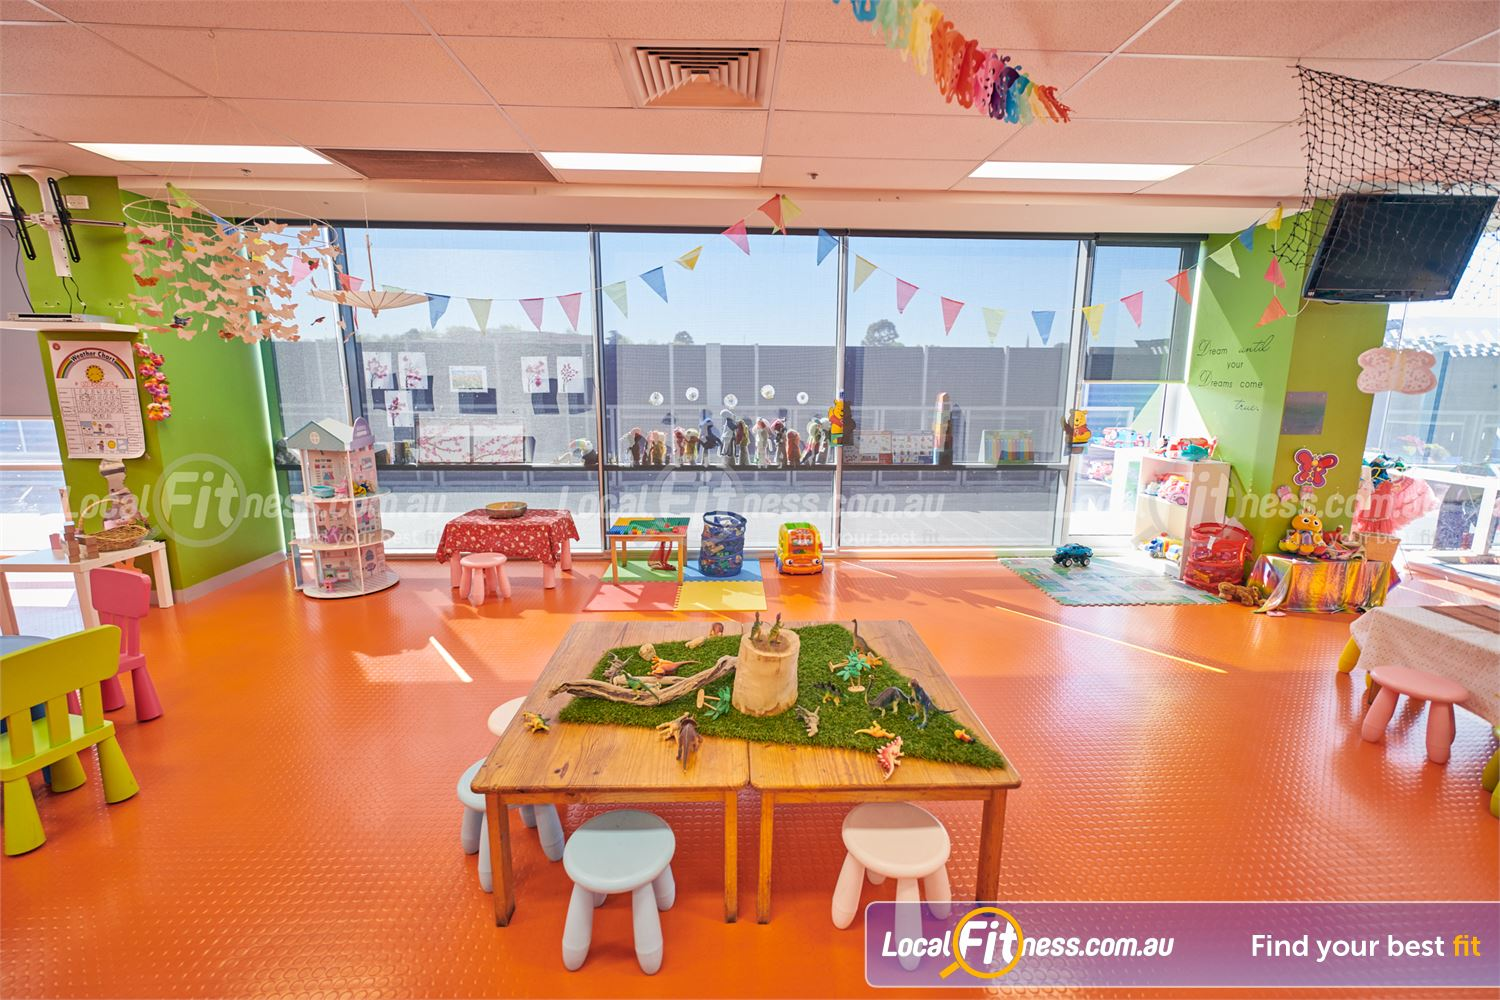 Goodlife Health Clubs Camberwell Goodlife provides on-site Camberwell child minding services.